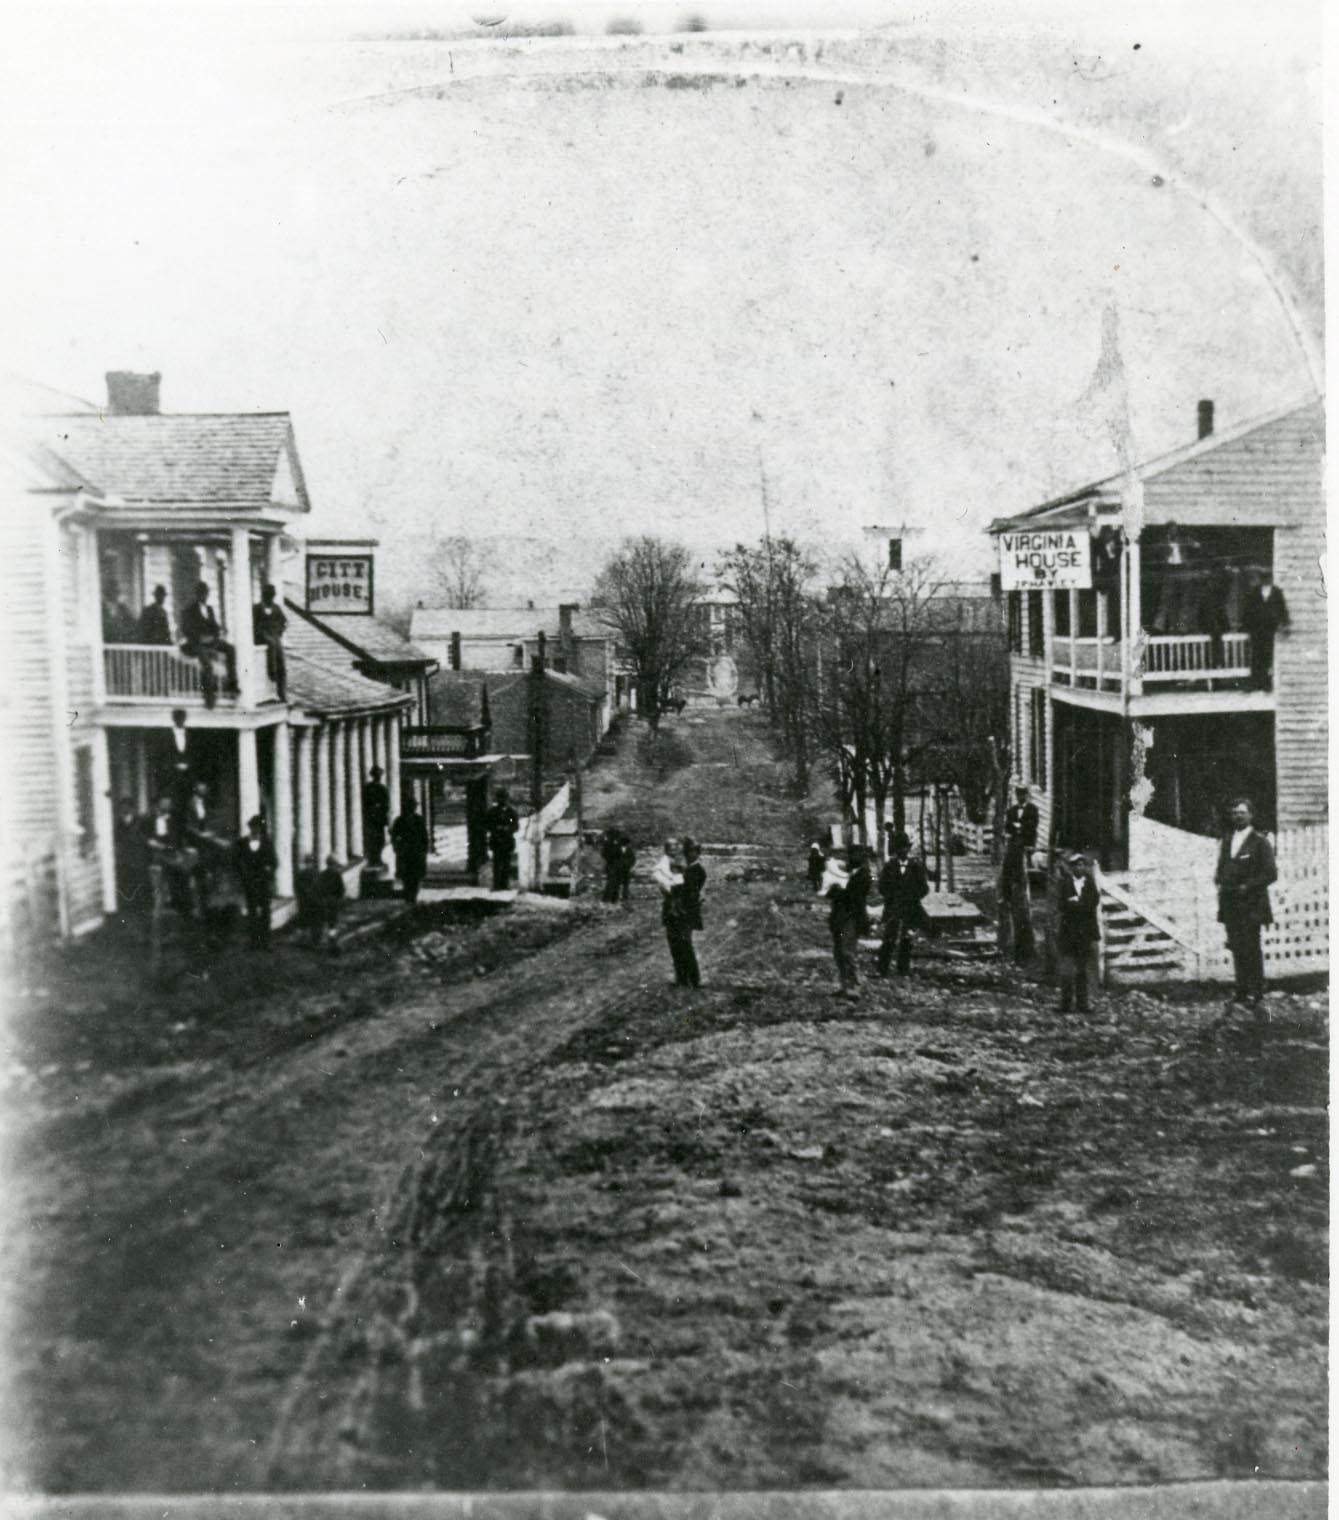 Far int he distance at the center of the frame is the VAMC machine shop. This photograph was taken on Main St. looking west, possibly near the Post Office.